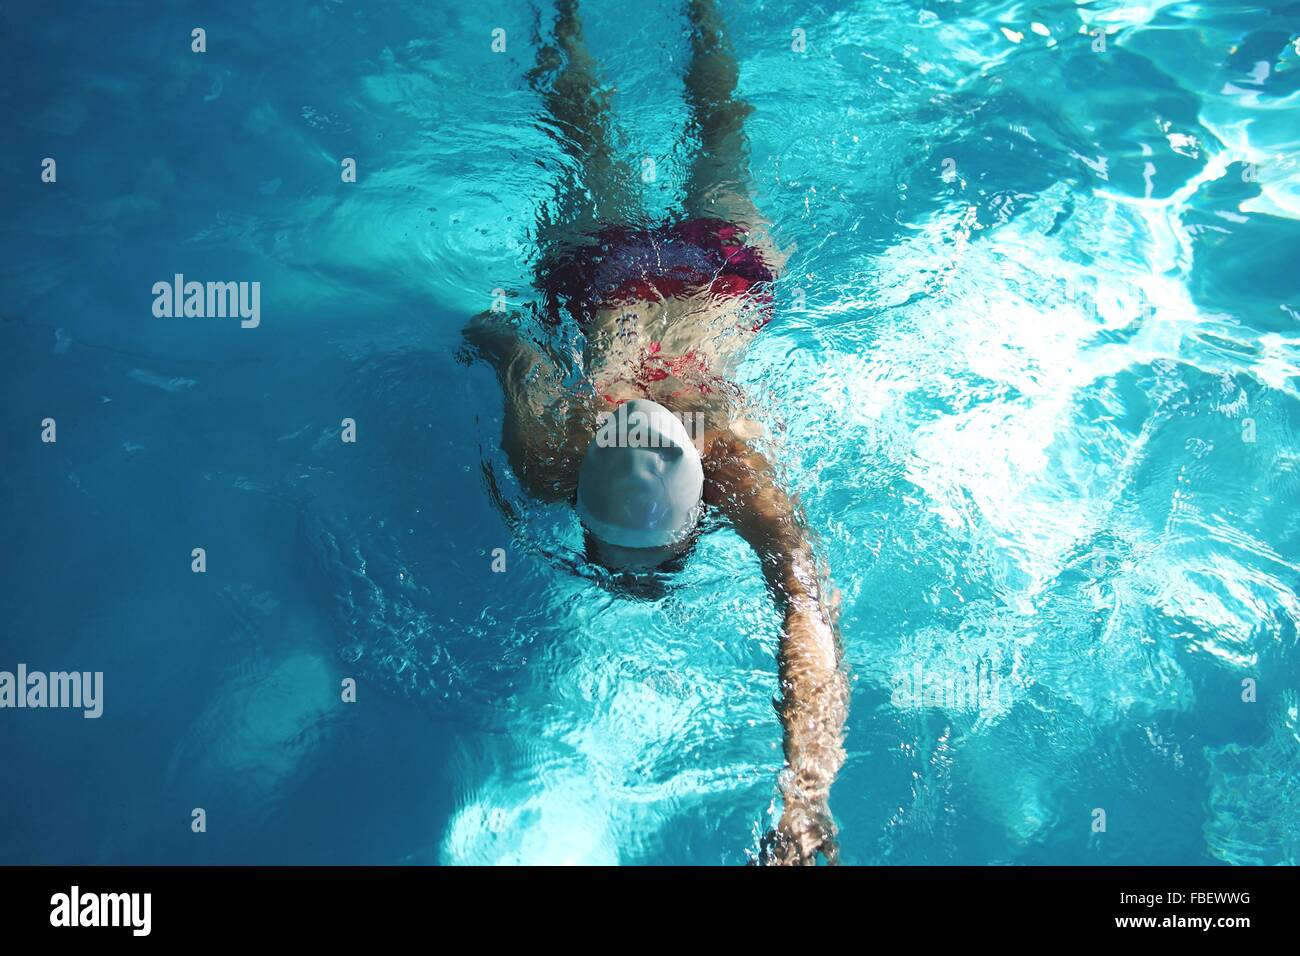 High Angle View of Woman in Swimming Pool Photo Stock